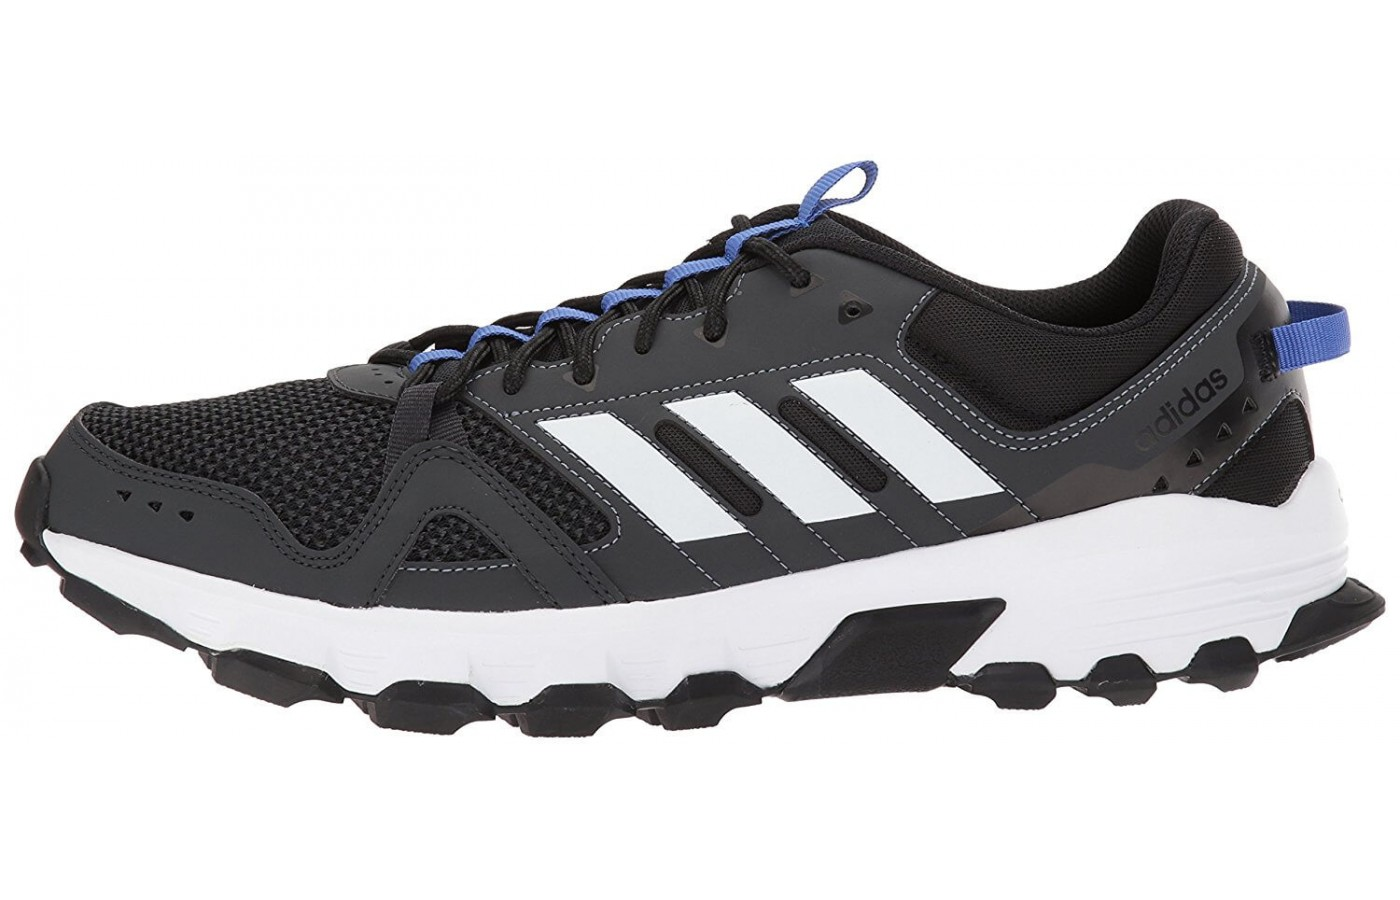 the adidas rockadia trail runner features great comfort